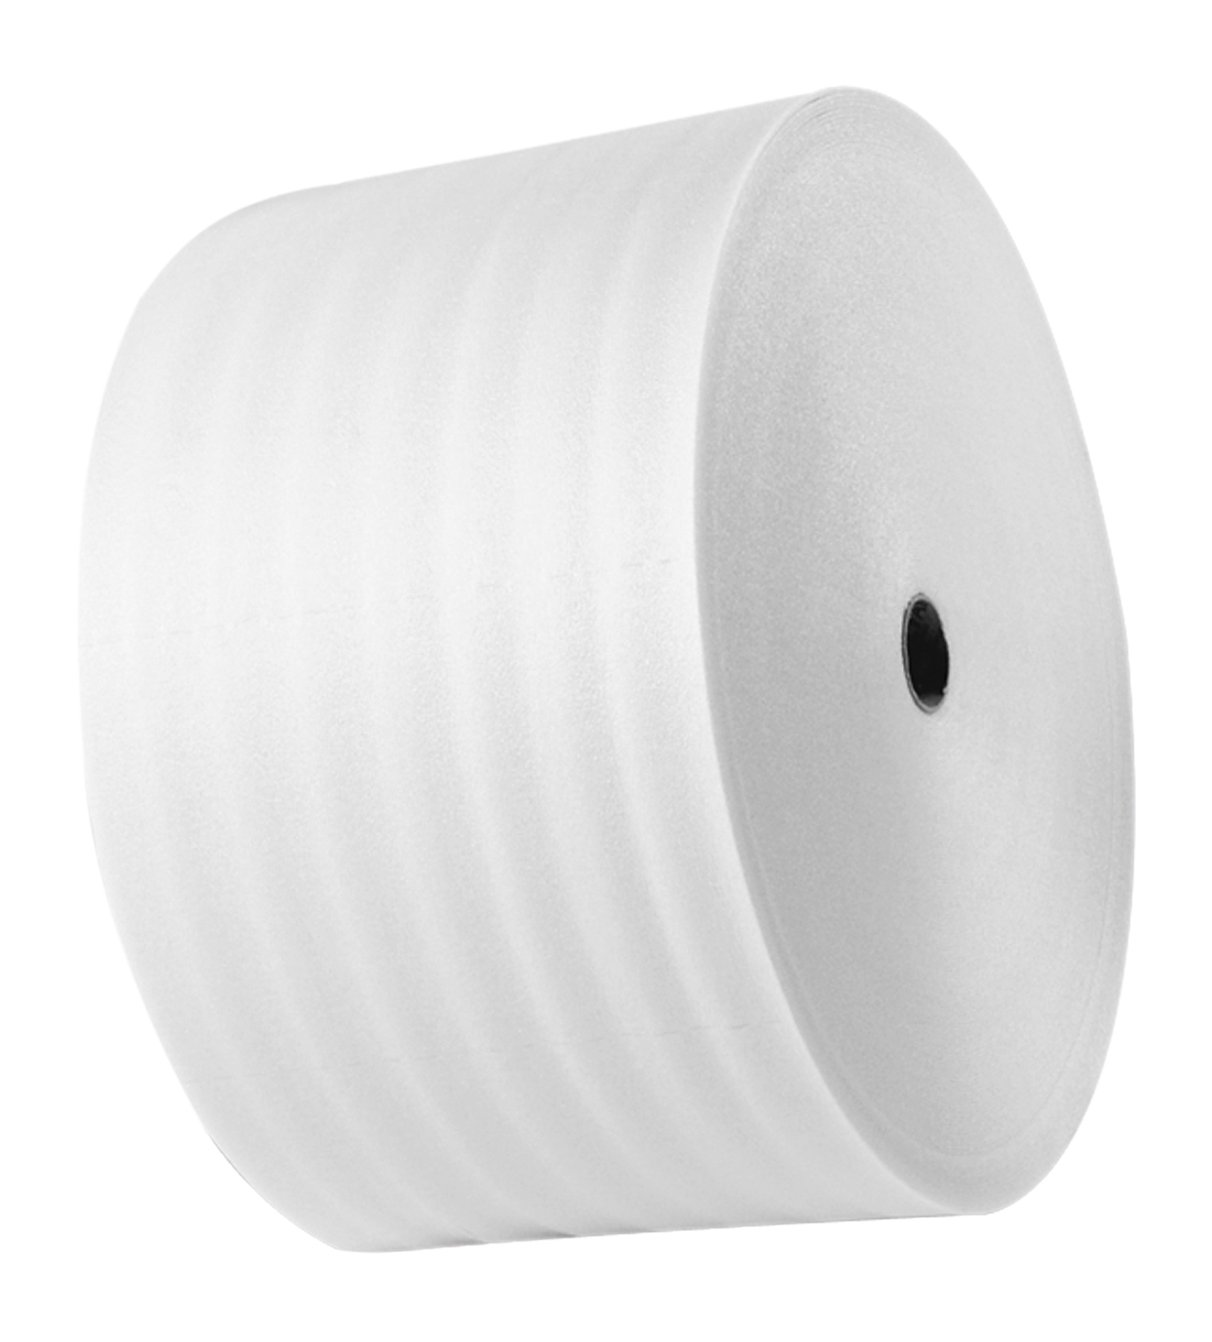 BOX USA BFWUPS18S24 UPSable Air Foam Rolls, 1/8'' x 24'' x 350', White by BOX USA